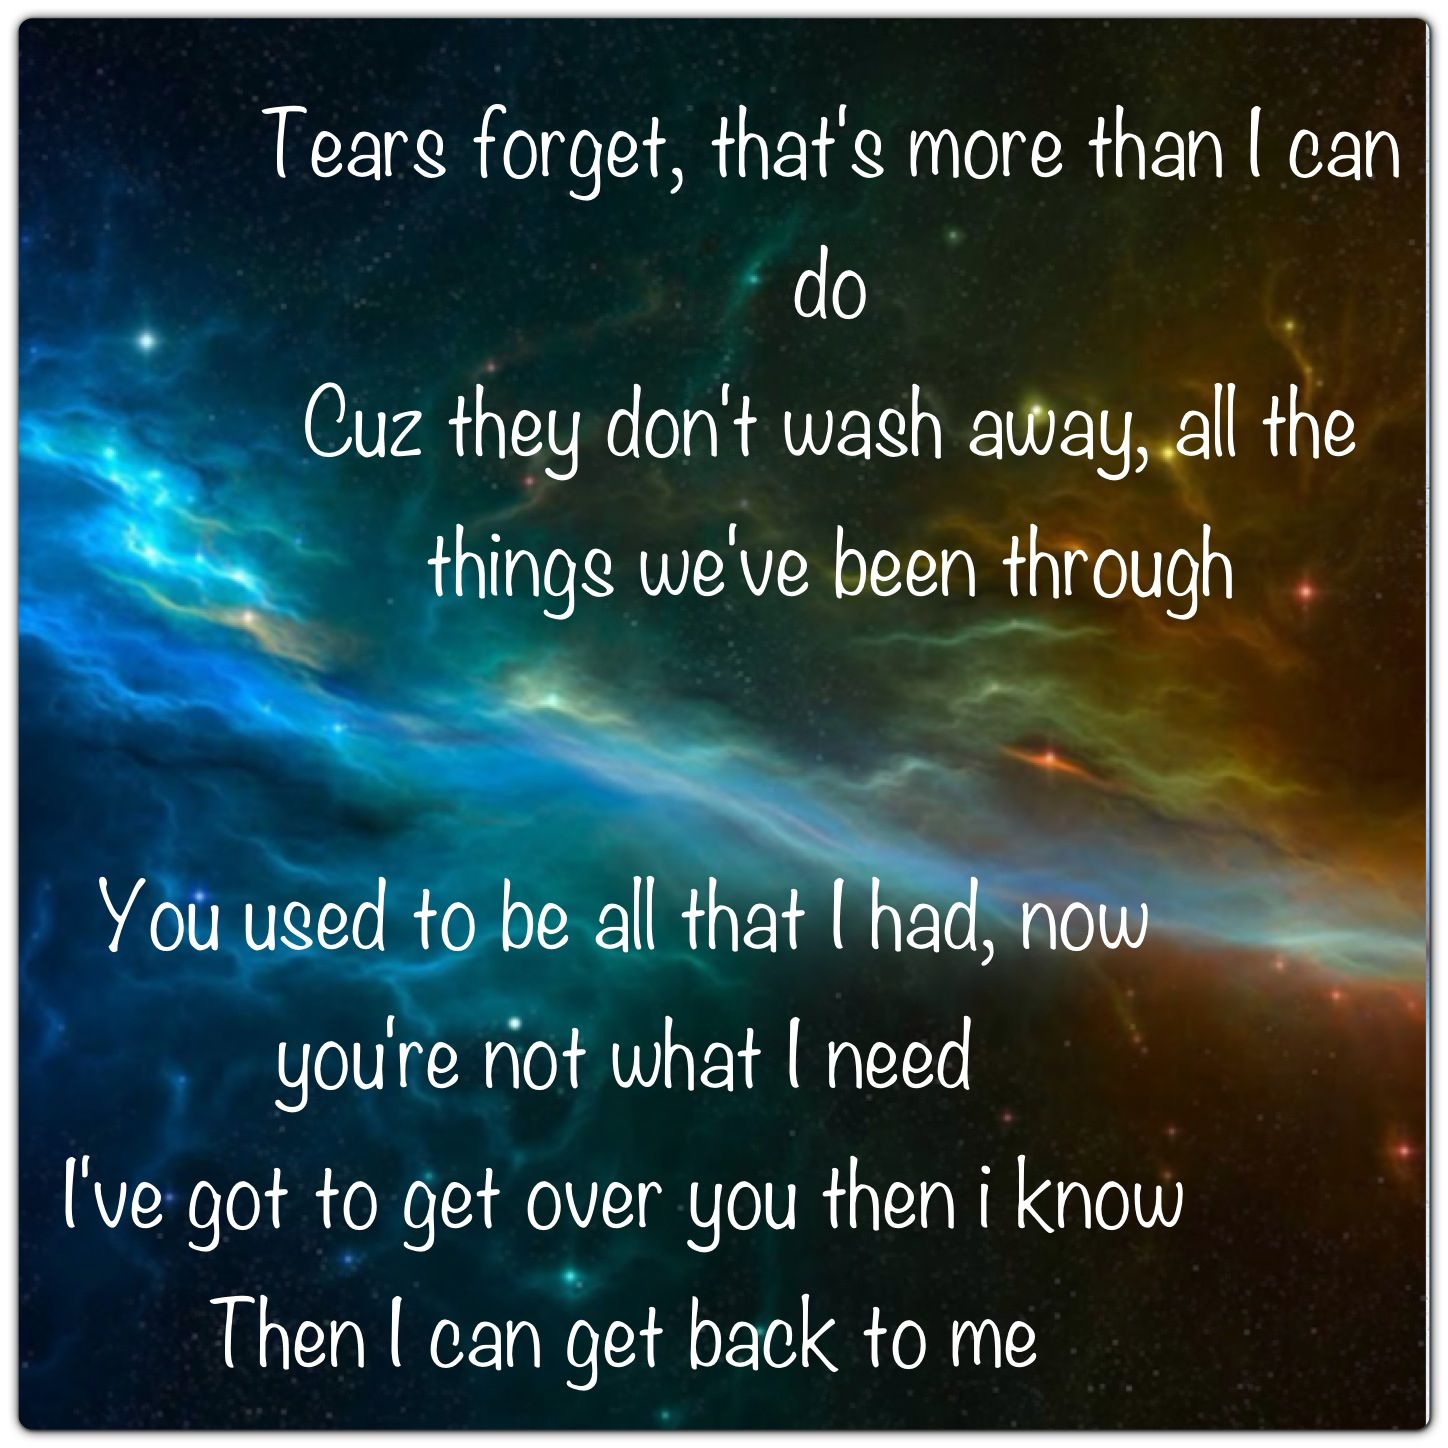 Back to me by 3 doors down | Favorite song quotes and lyrics ...